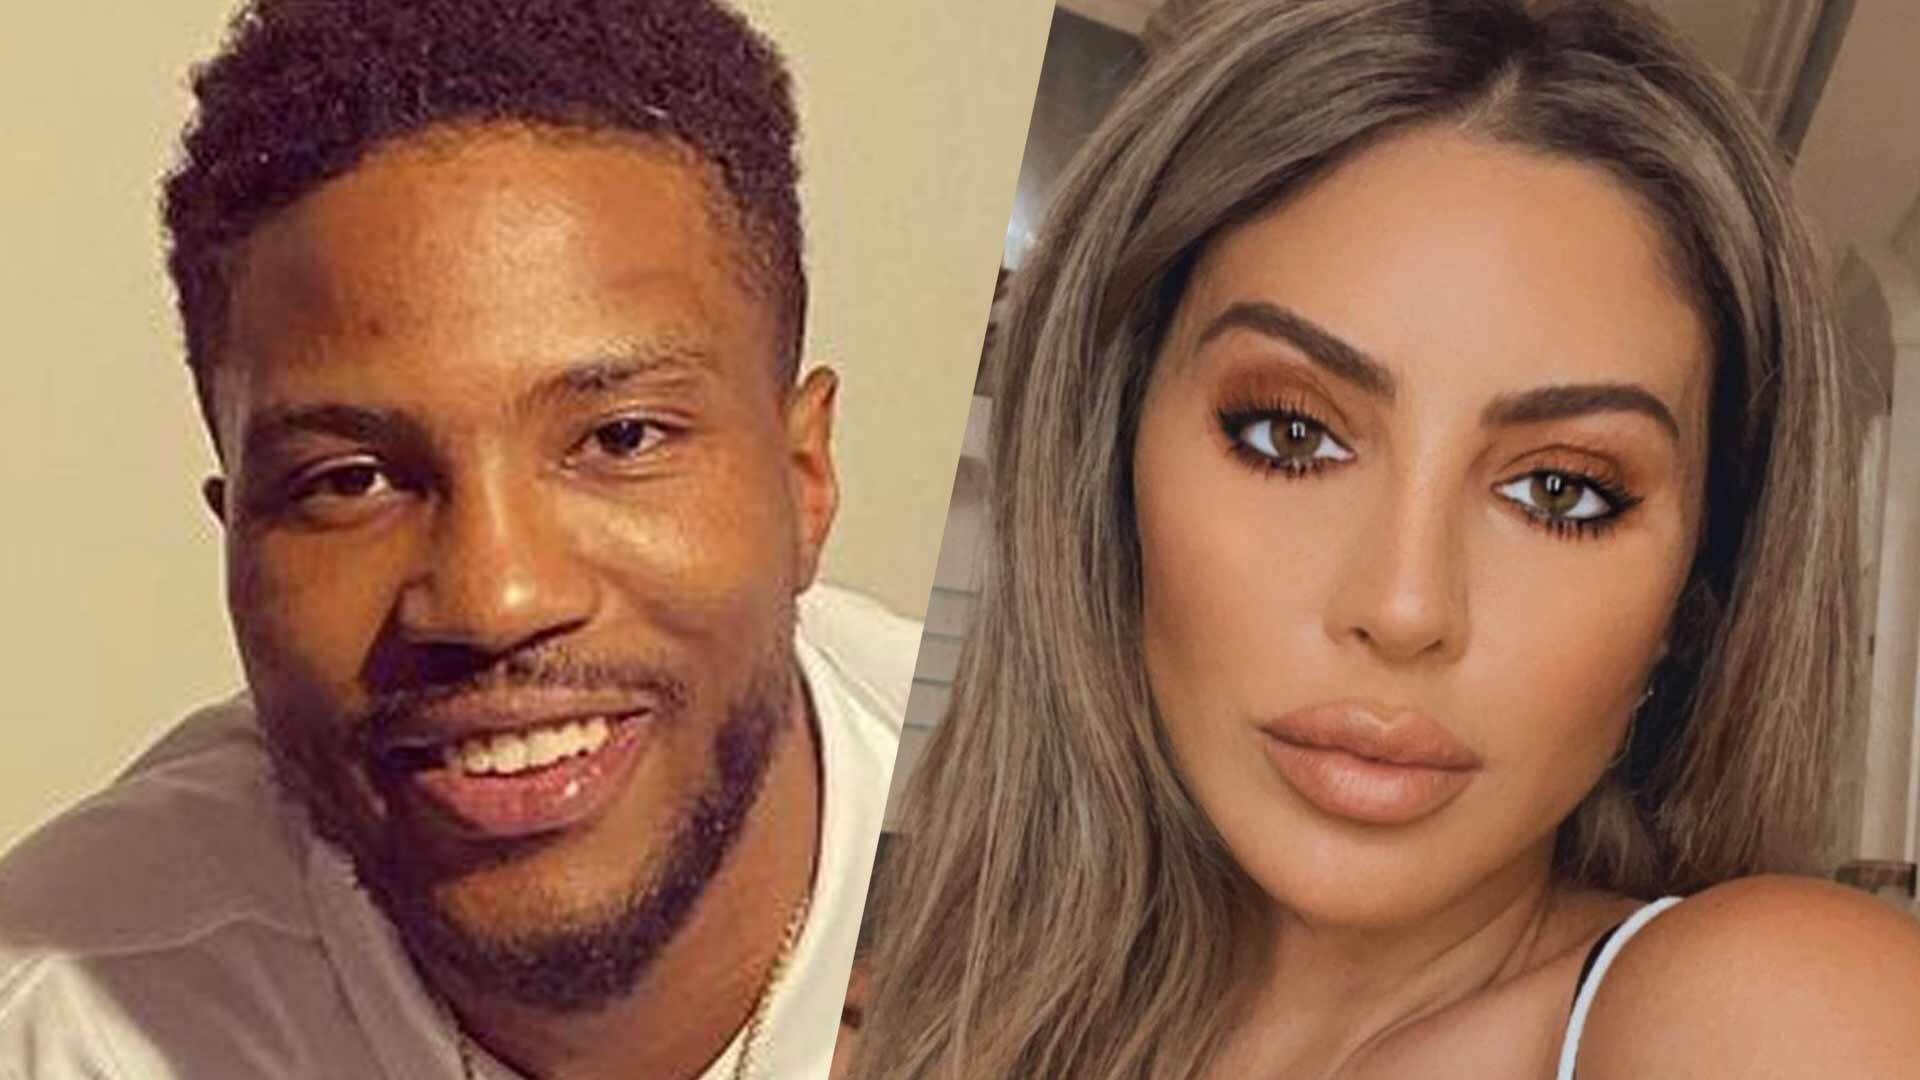 Larsa Pippen Opens Up About Dating Malik Beasley While He Was Still Married – 'They Had Issues Before'